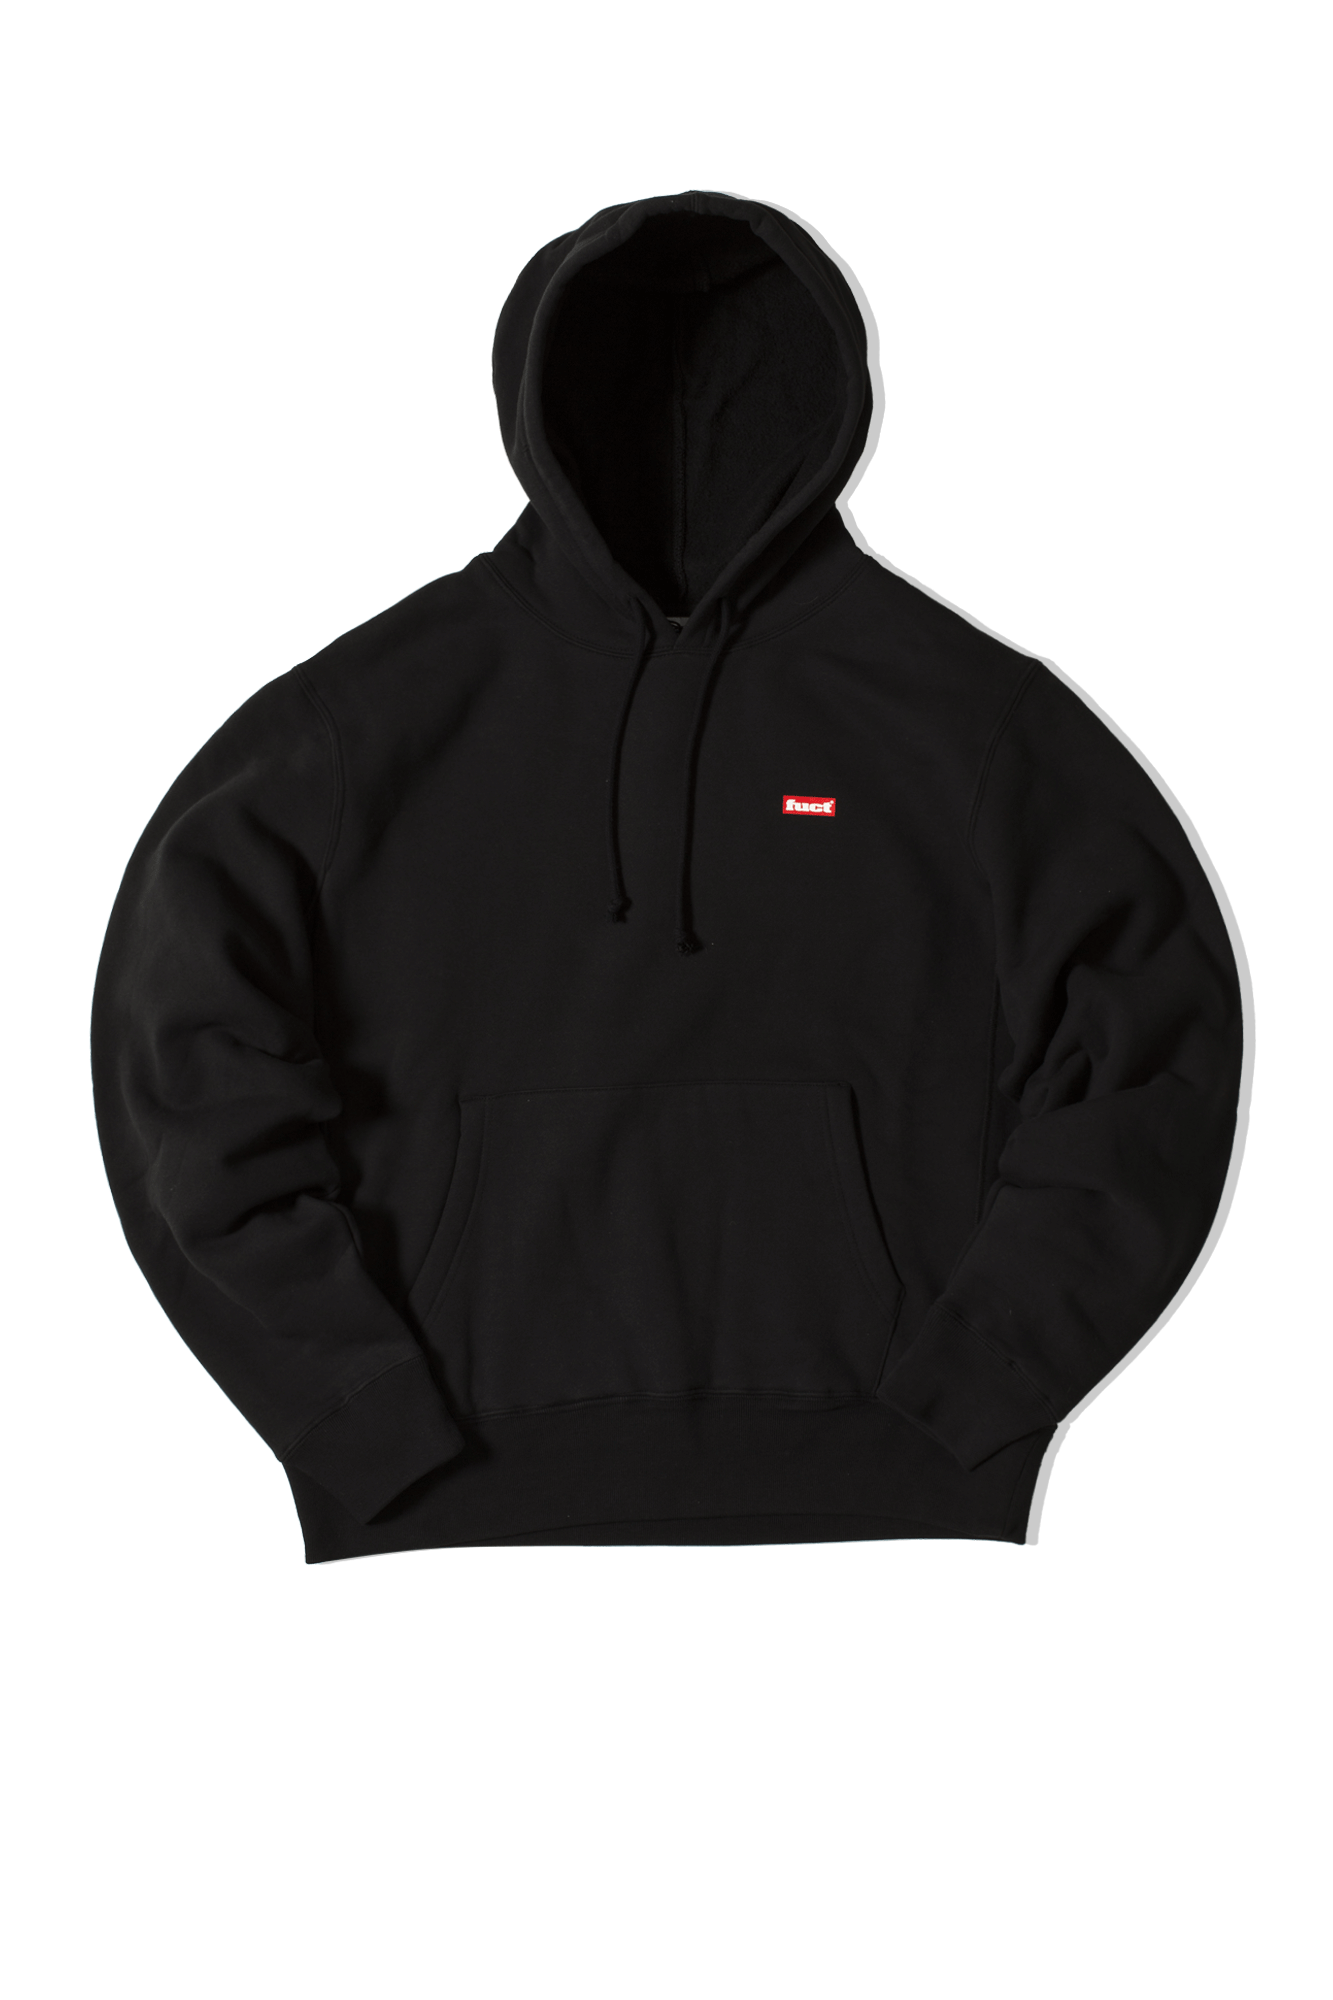 AMEN HOODY Black